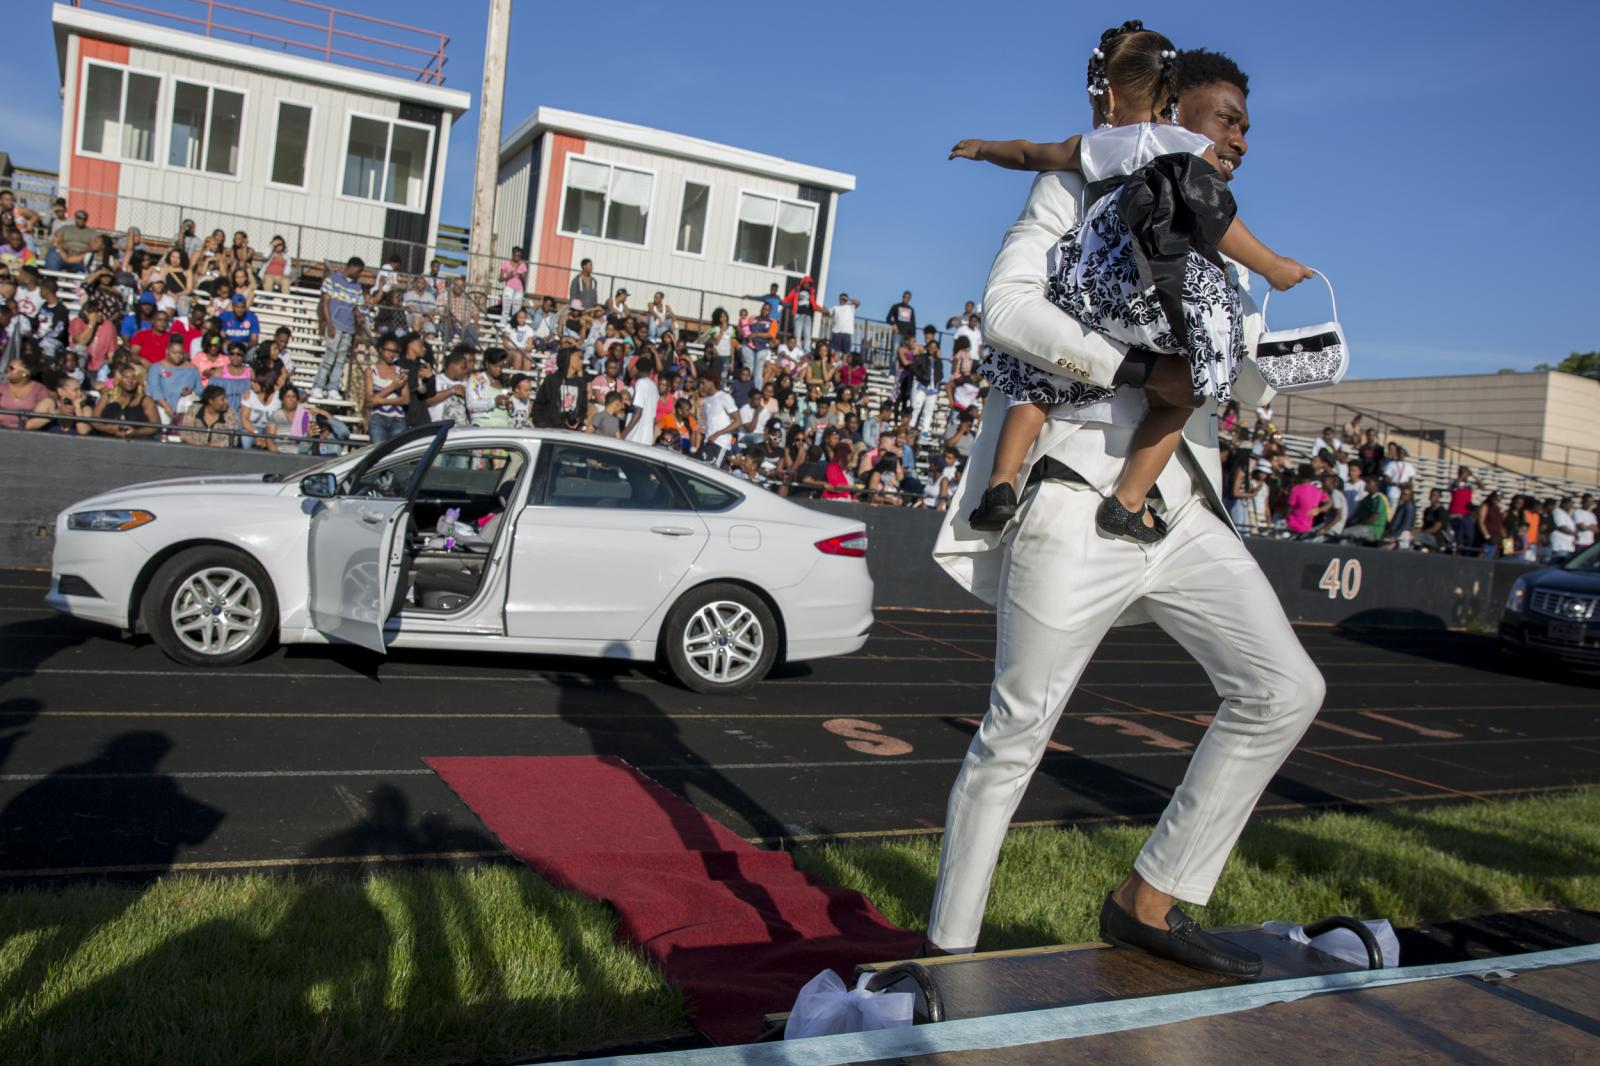 Javonte Kendrick carries his niece Monyae Helms, 1, to the stage as their names were announced during Muskegon Heights Academy's traditional pre-prom Showoff in Muskegon Heights, Michigan. A longstanding tradition, Showoff involved 40 students and their dates driving up in front of a platform on the high school football field before heading to the prom.